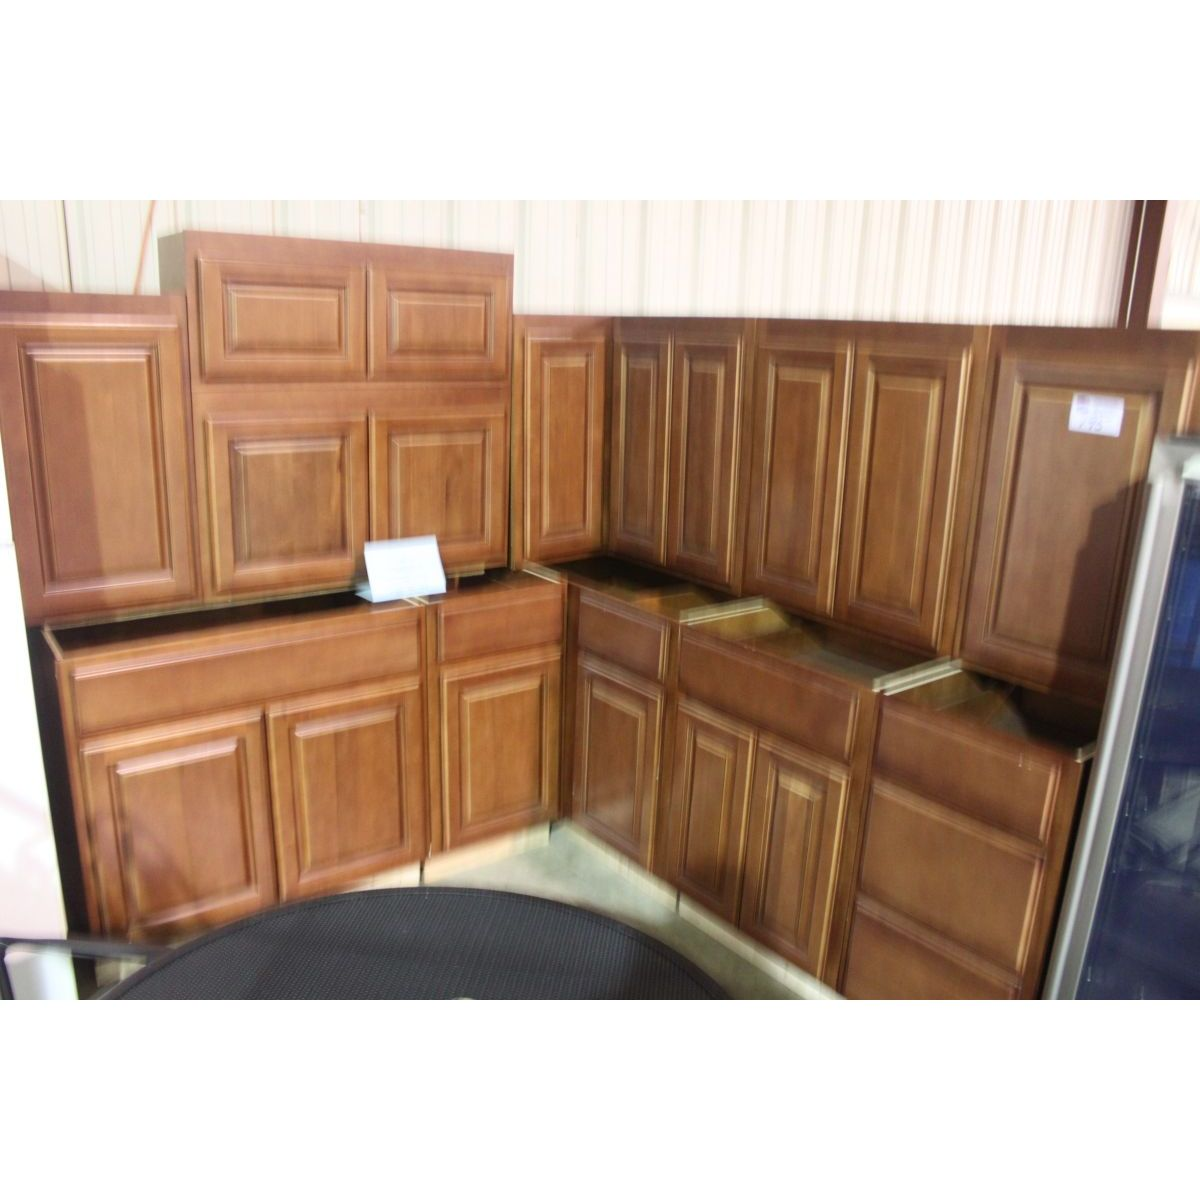 13 piece cherry kitchen cabinet set able auctions. Black Bedroom Furniture Sets. Home Design Ideas